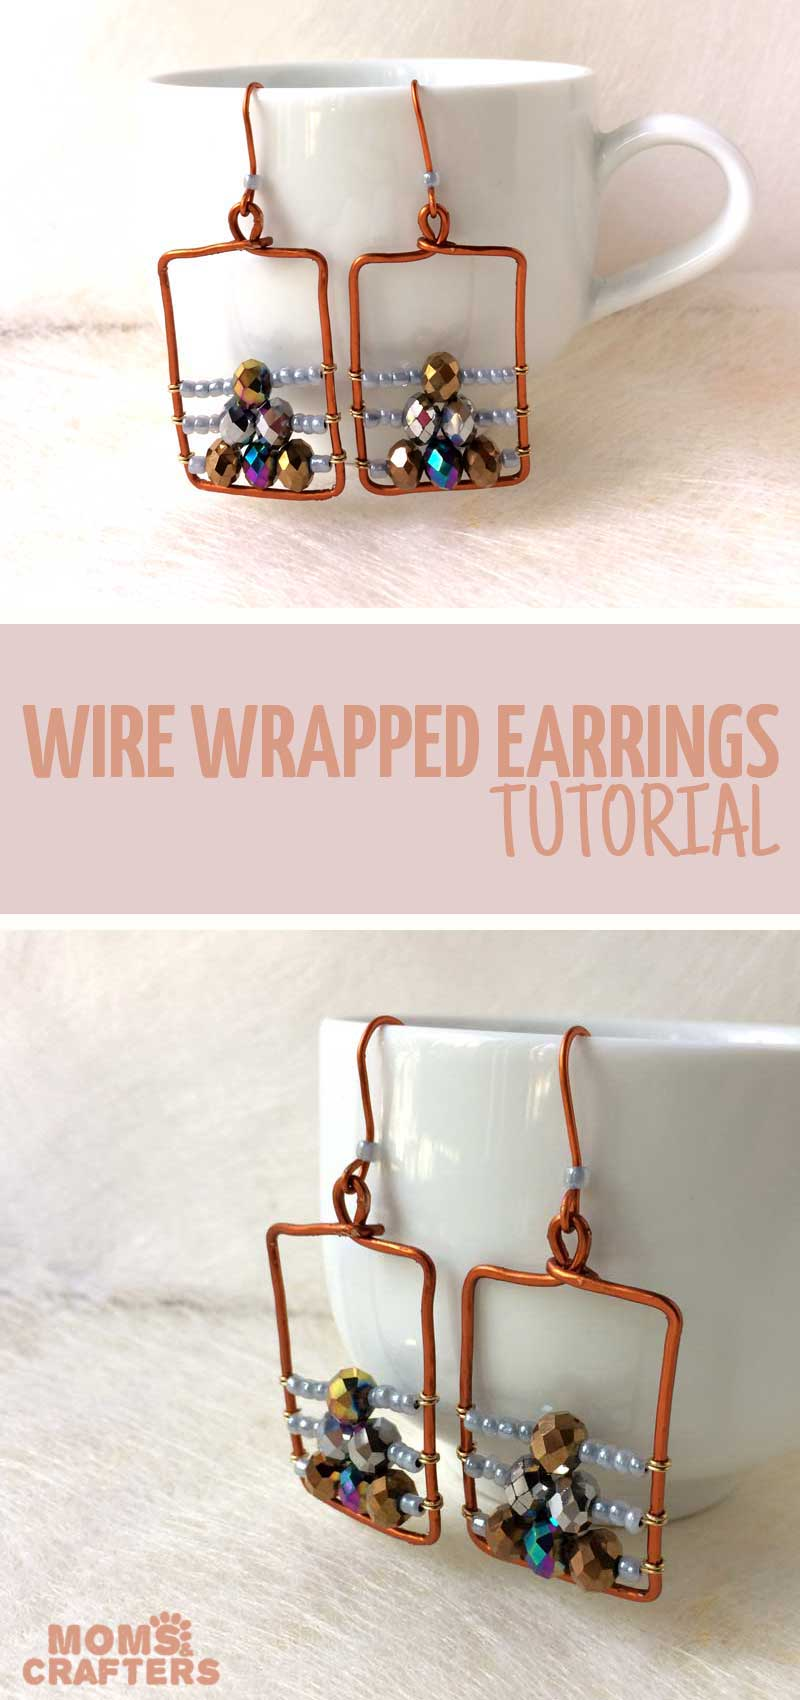 Beautiful, classy wire wrapped earrings tutoiral for beginners (or experts...) These cool DIY earrings ideas are easy and a touch of Bohemian too. The simple pattern with stones and beads are easy to learn how to make. #diyjewelry #earrings #momsandcrafters